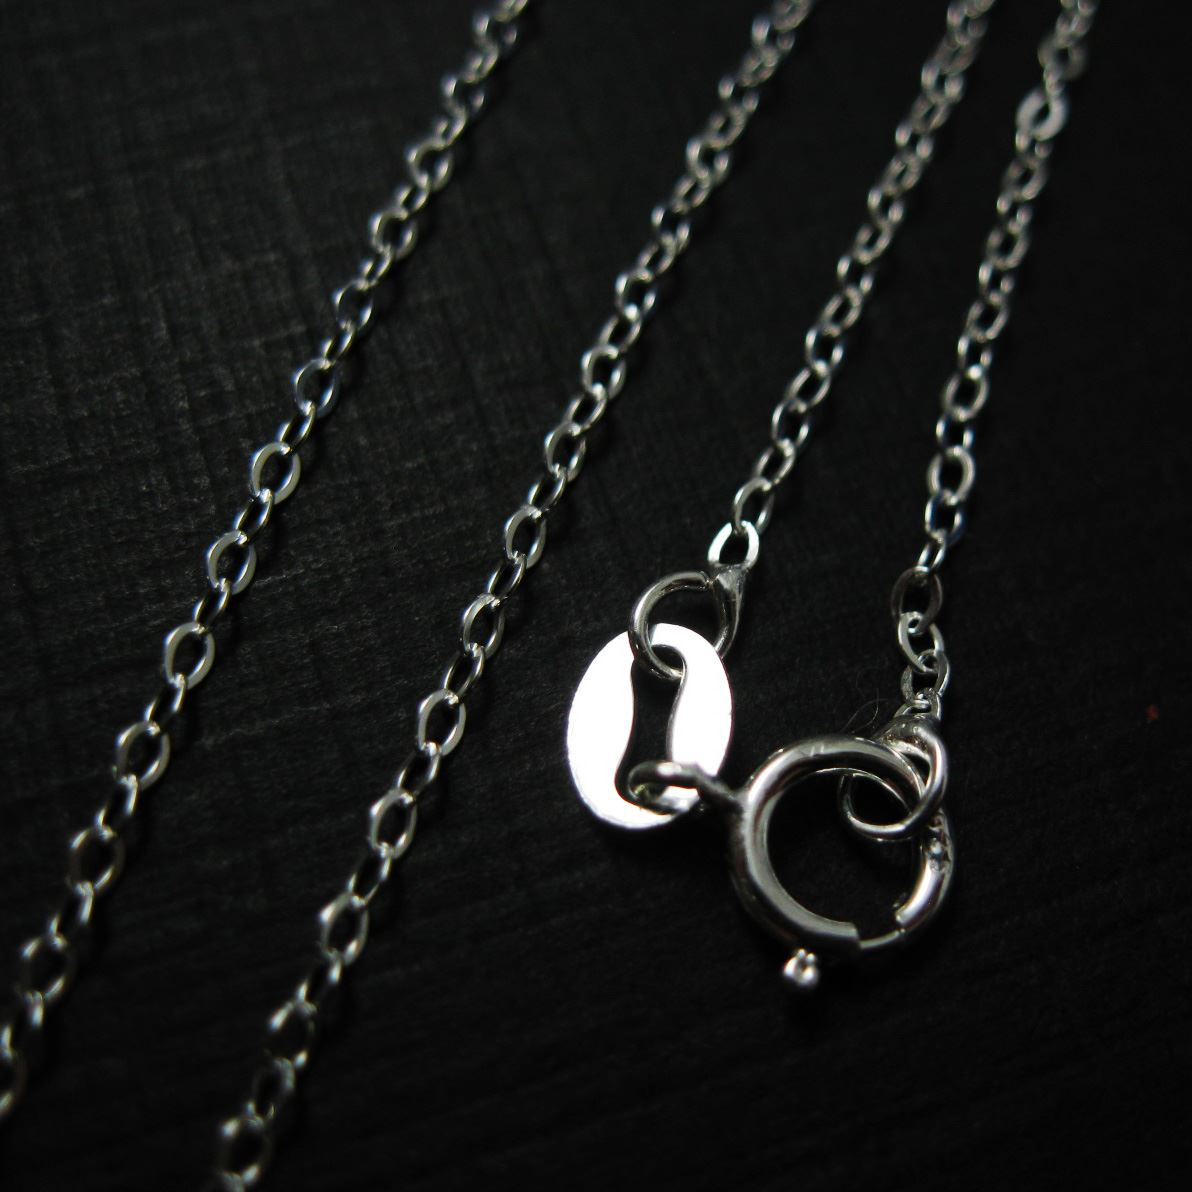 Sterling Silver Necklace Chain - 1.8mm Cable Flat Oval Necklace - Long Necklace - Extra Long Necklace - All Sizes